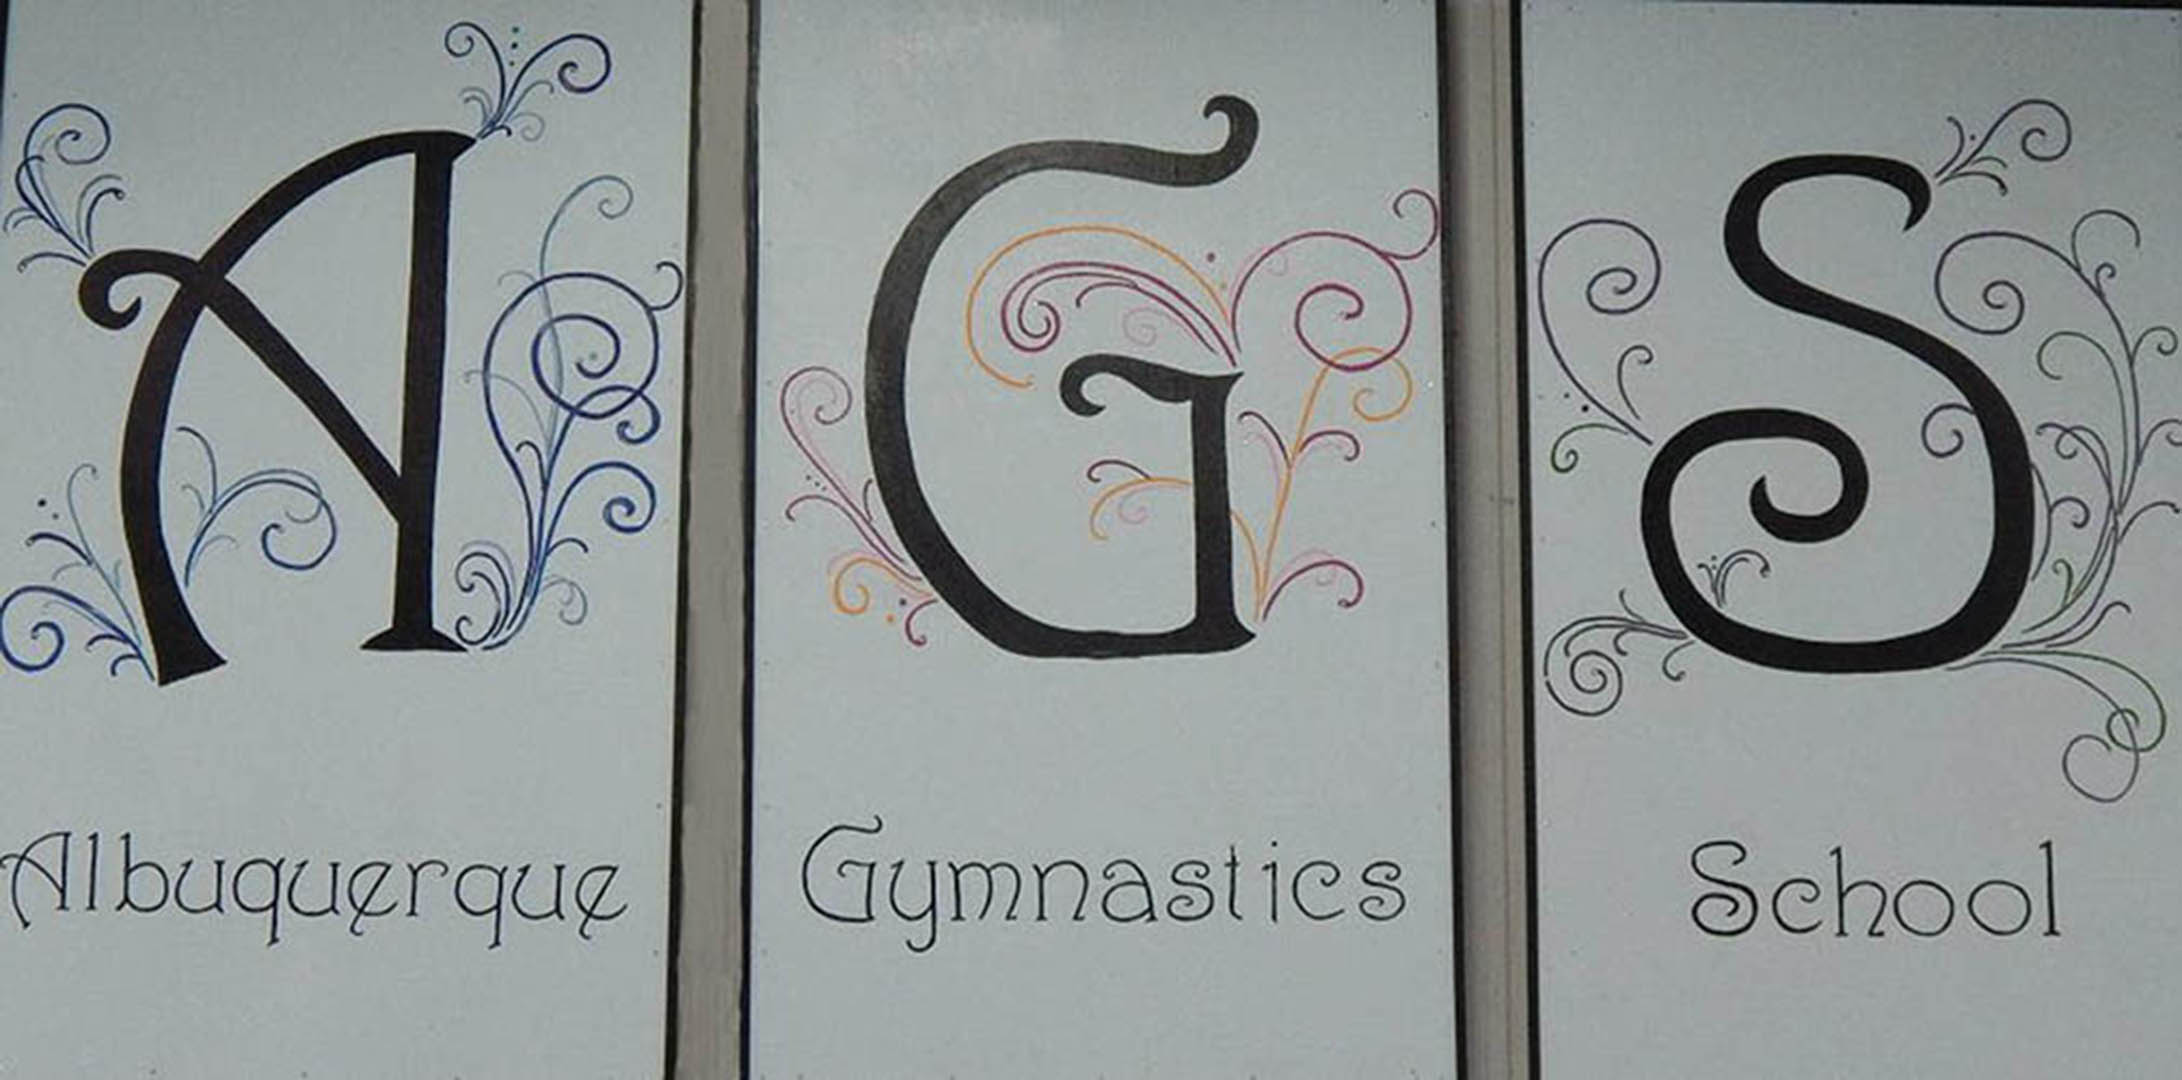 Albuquerque Gymnastics School